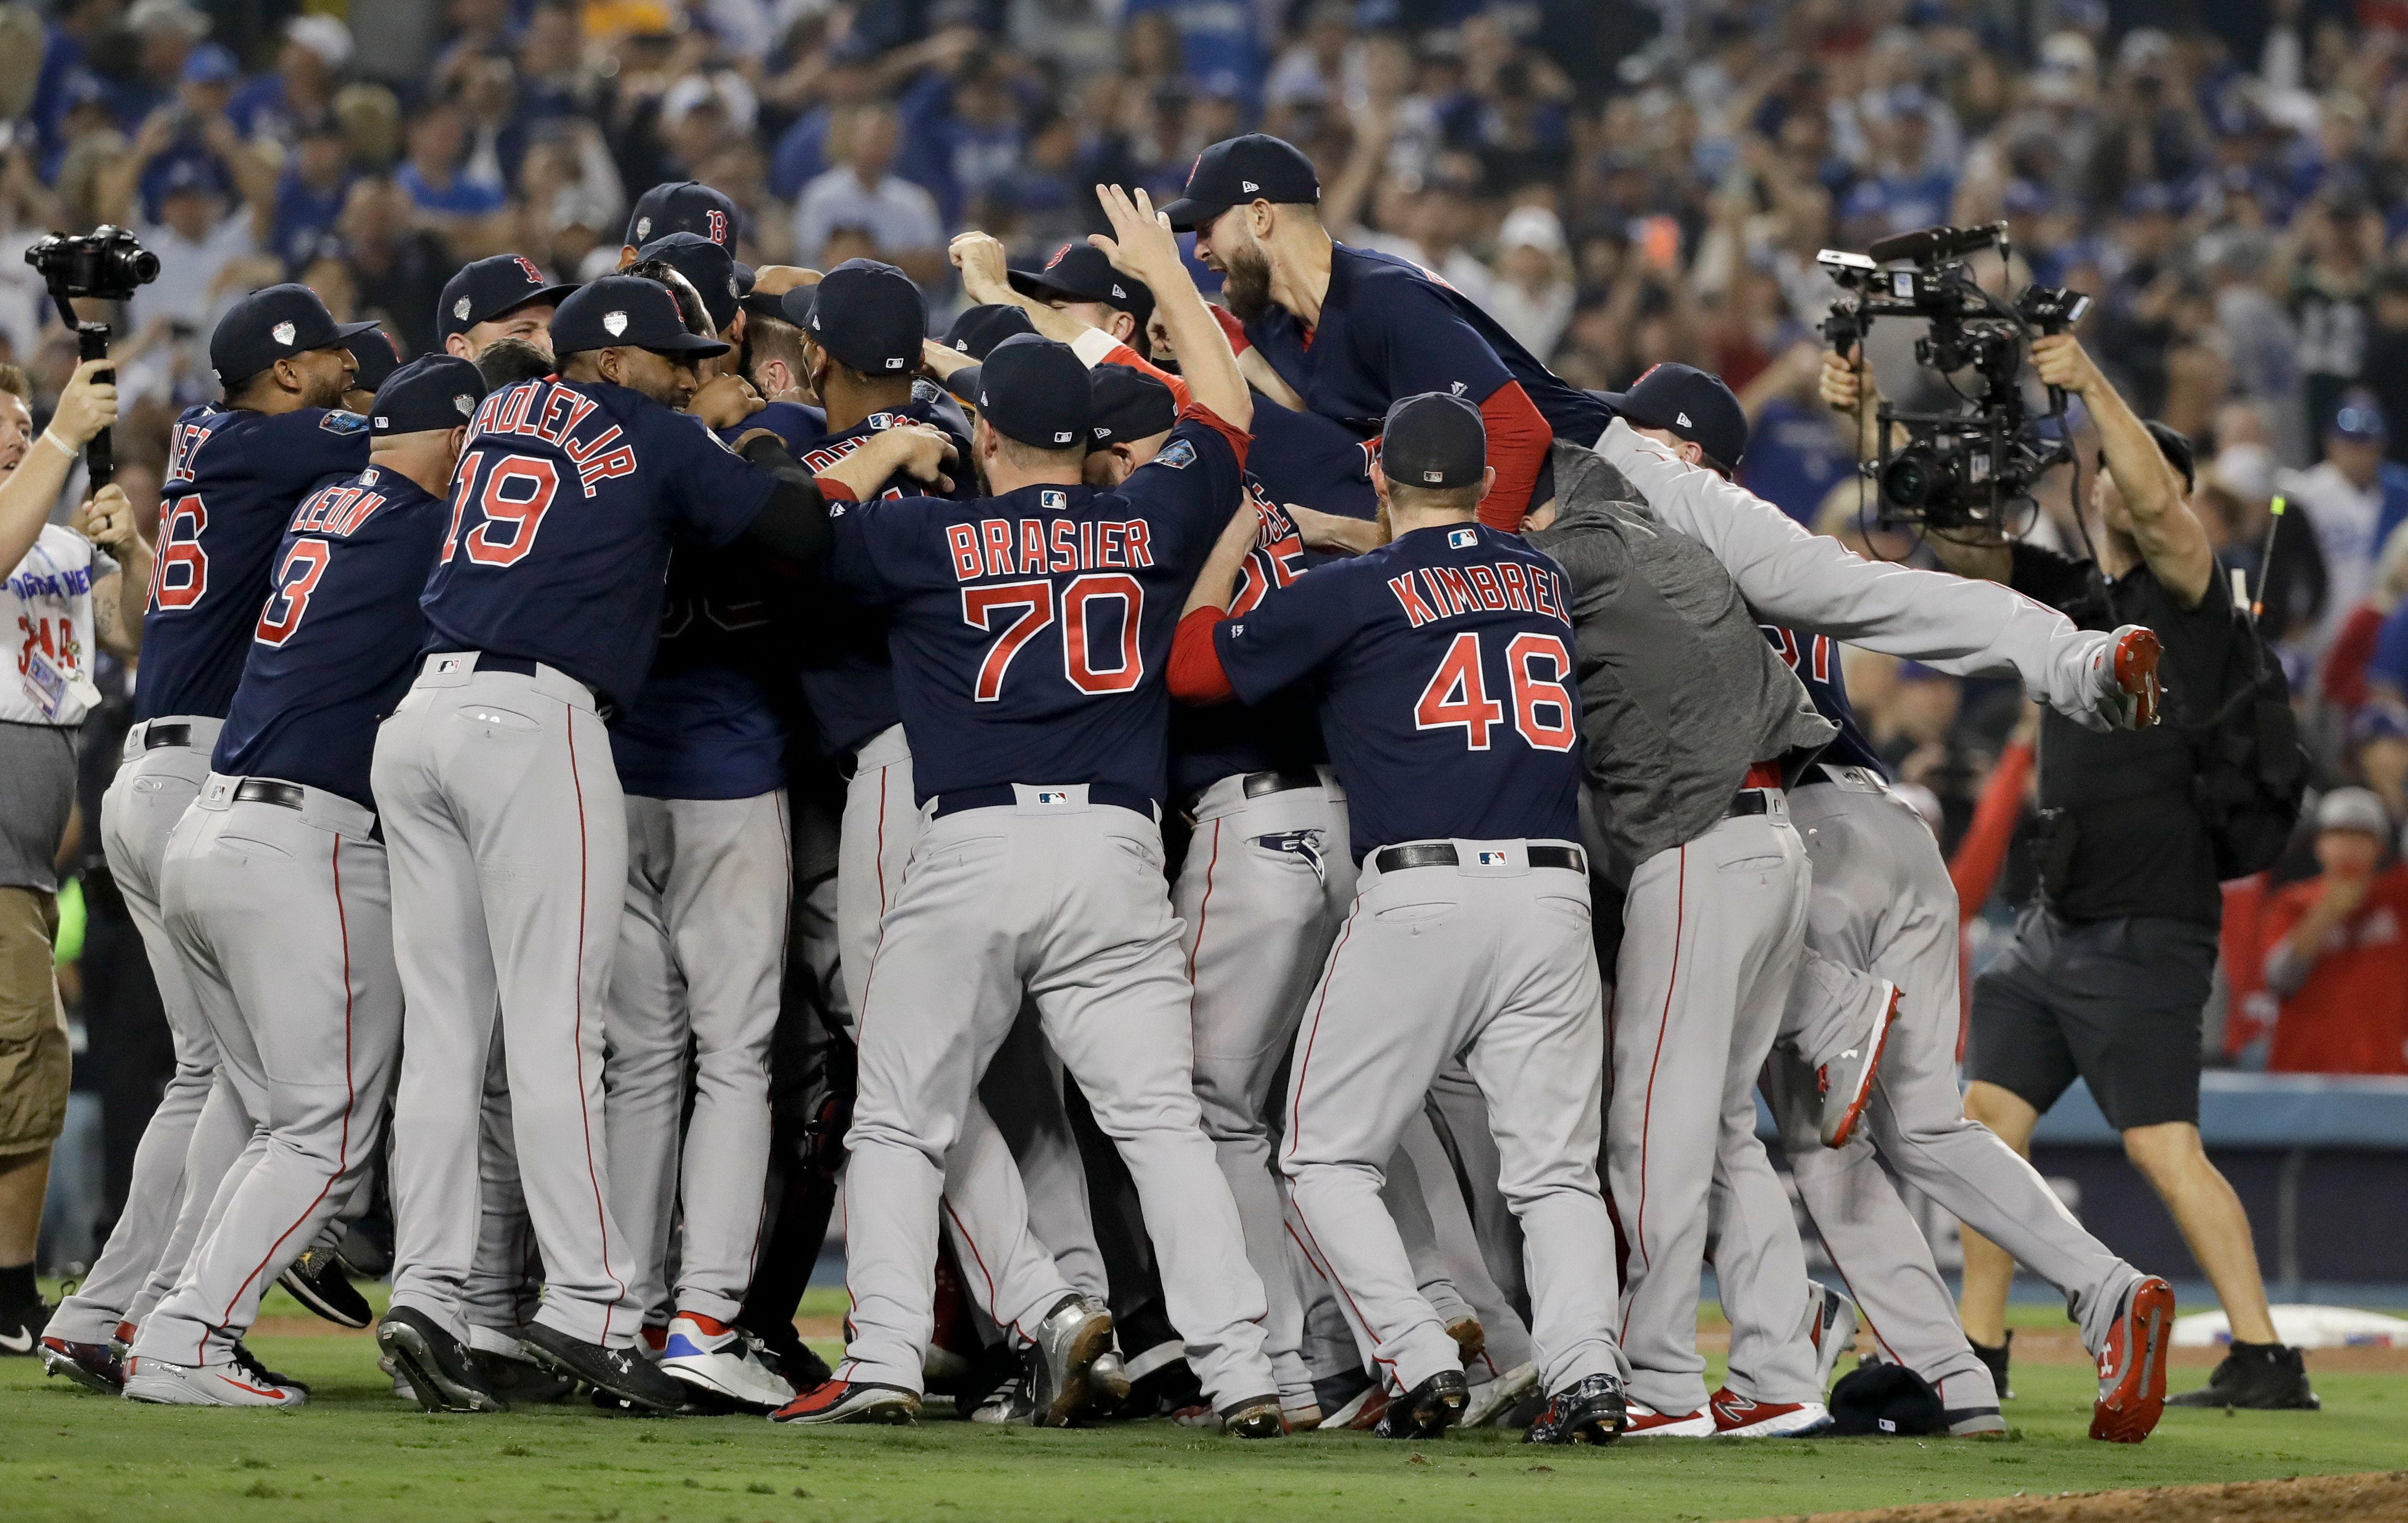 Red Sox Savagely Mock Yankees In World Series Locker Room